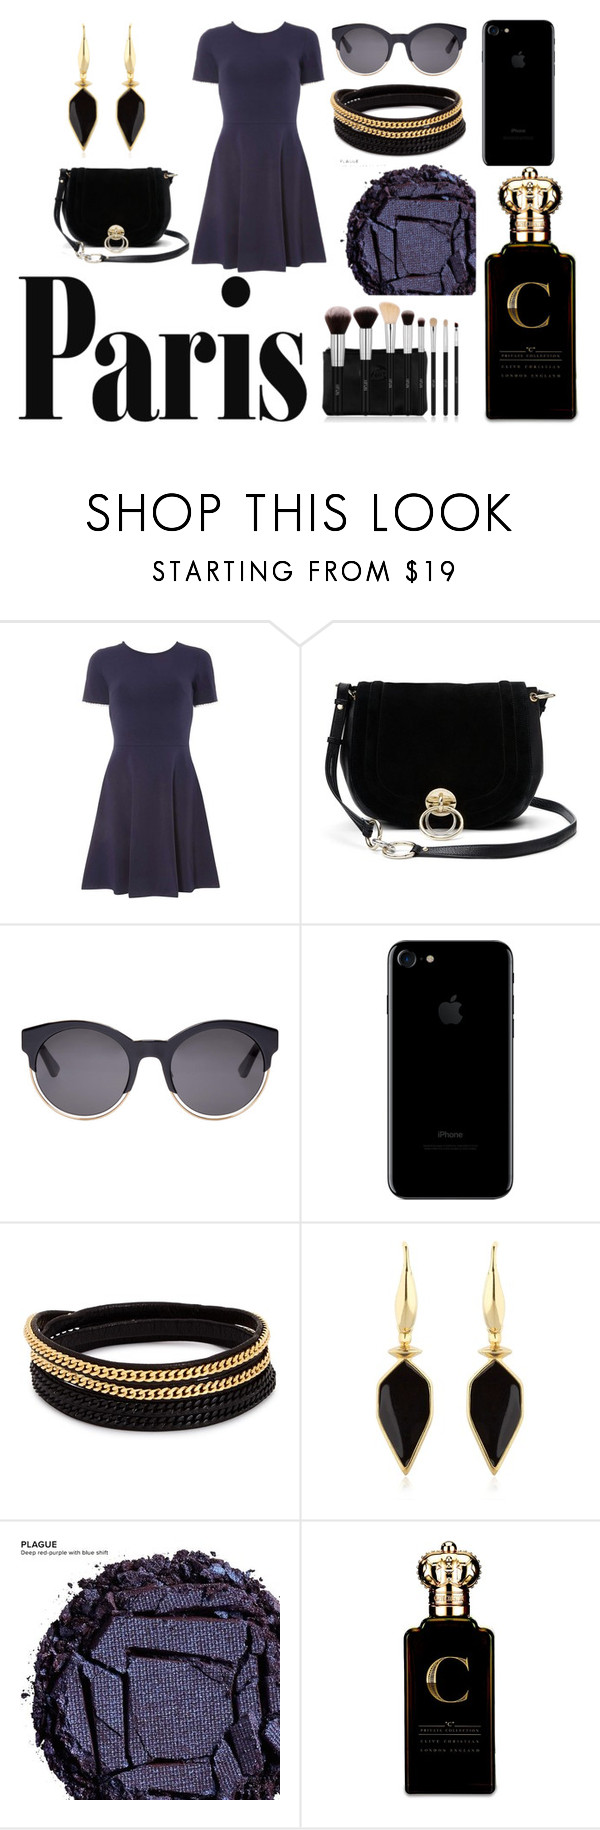 """Sin título #915"" by soolalcalde ❤ liked on Polyvore featuring Dorothy Perkins, Diane Von Furstenberg, Christian Dior, Vita Fede, Isabel Marant, Urban Decay, Clive Christian and fallgetaway"